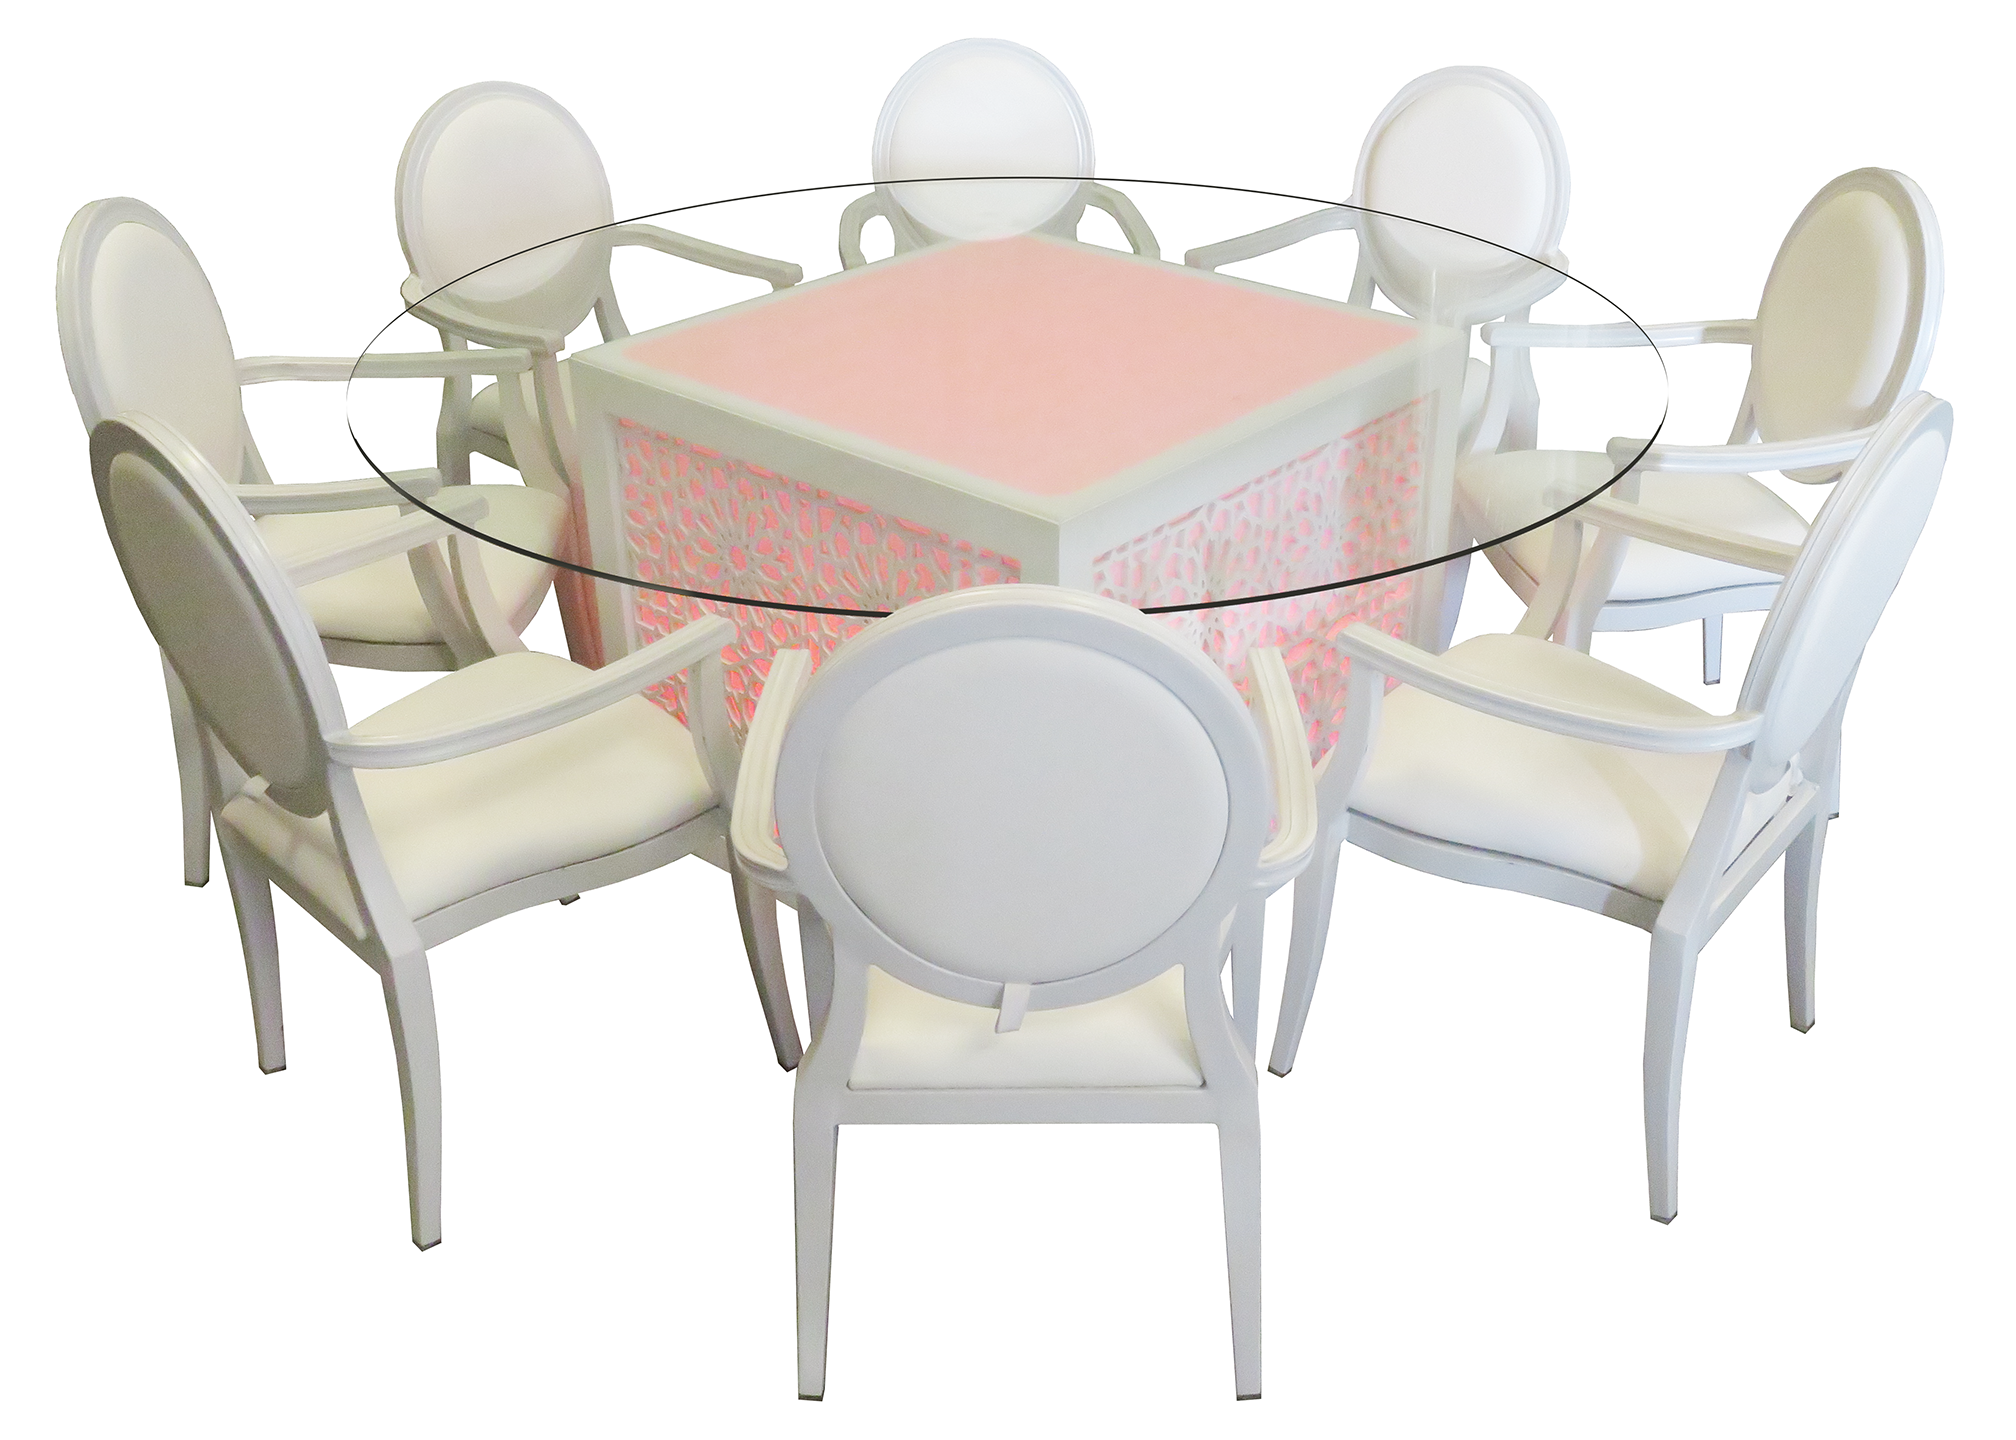 Small Round Glass Dining Table And 2 Chairs: Mashrabiya Round Glass Dining Table For Sale Or Rent In